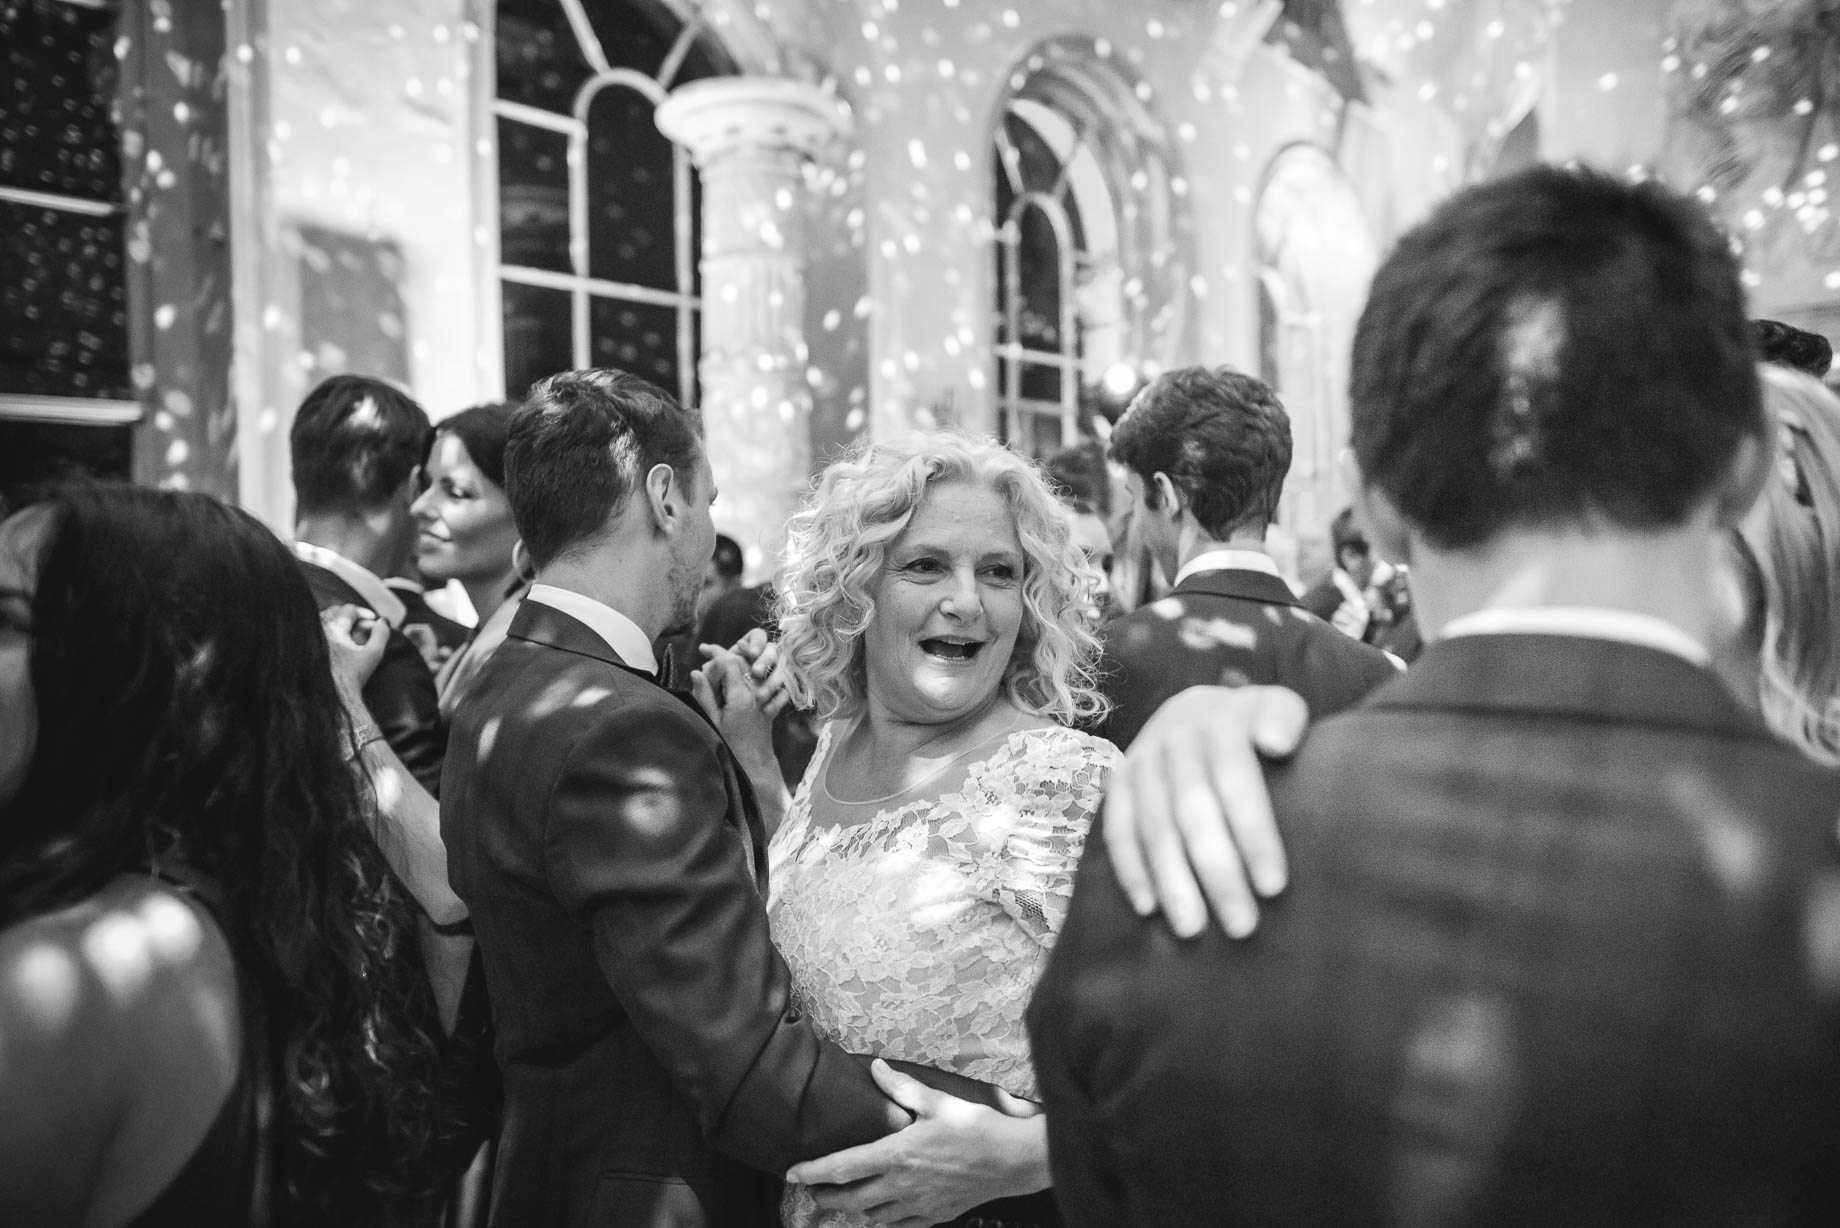 Aynhoe Park wedding photography - Guy Collier - Becky and Nick (230 of 233)